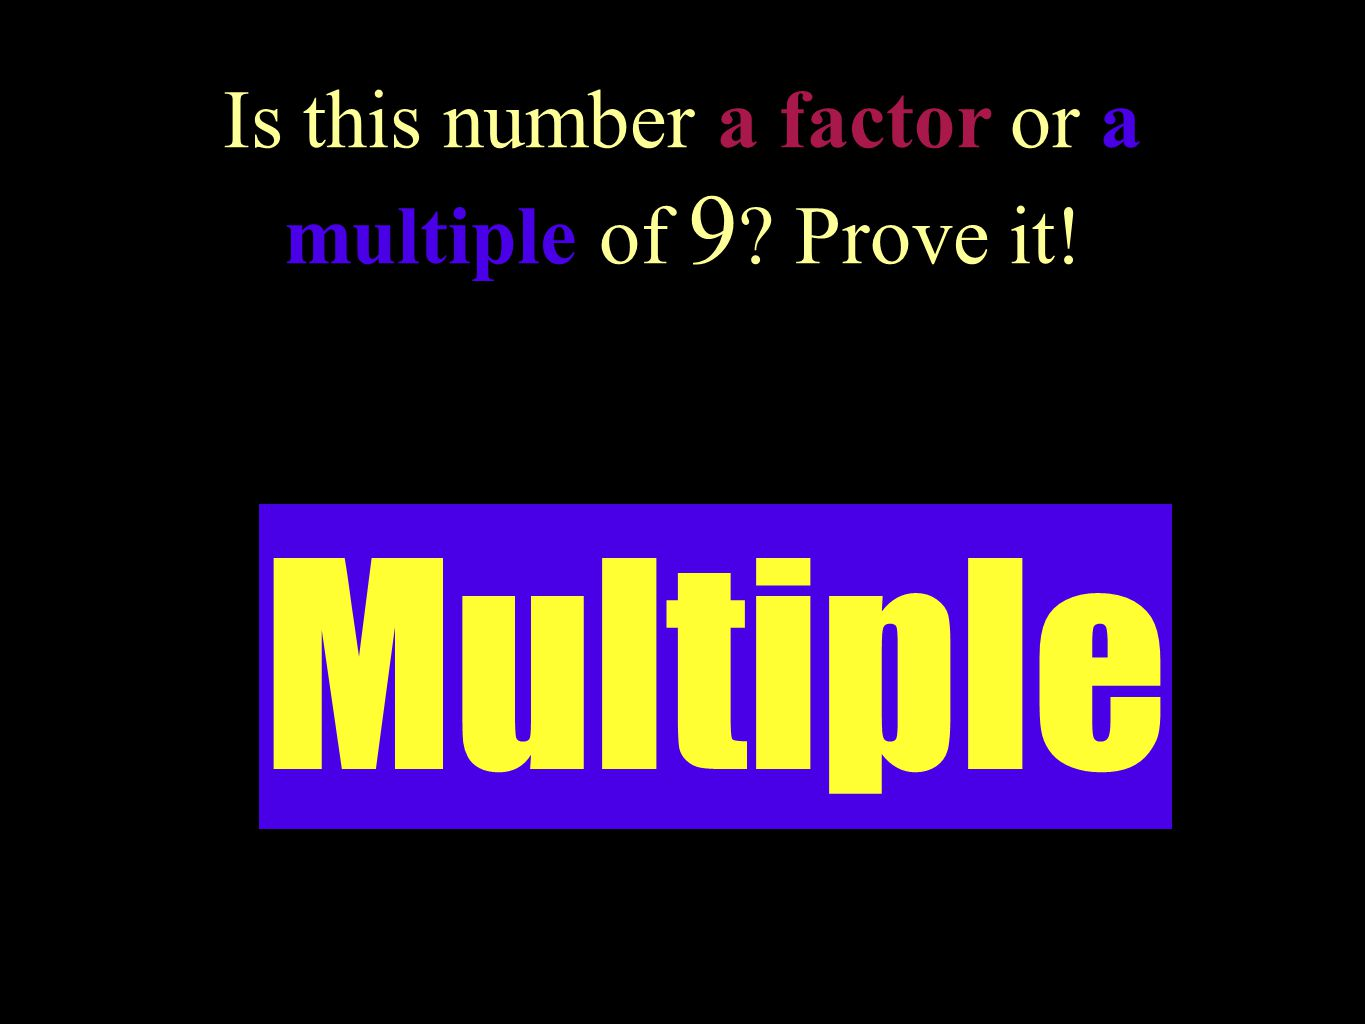 Is this number a factor or a multiple of 9 Prove it!